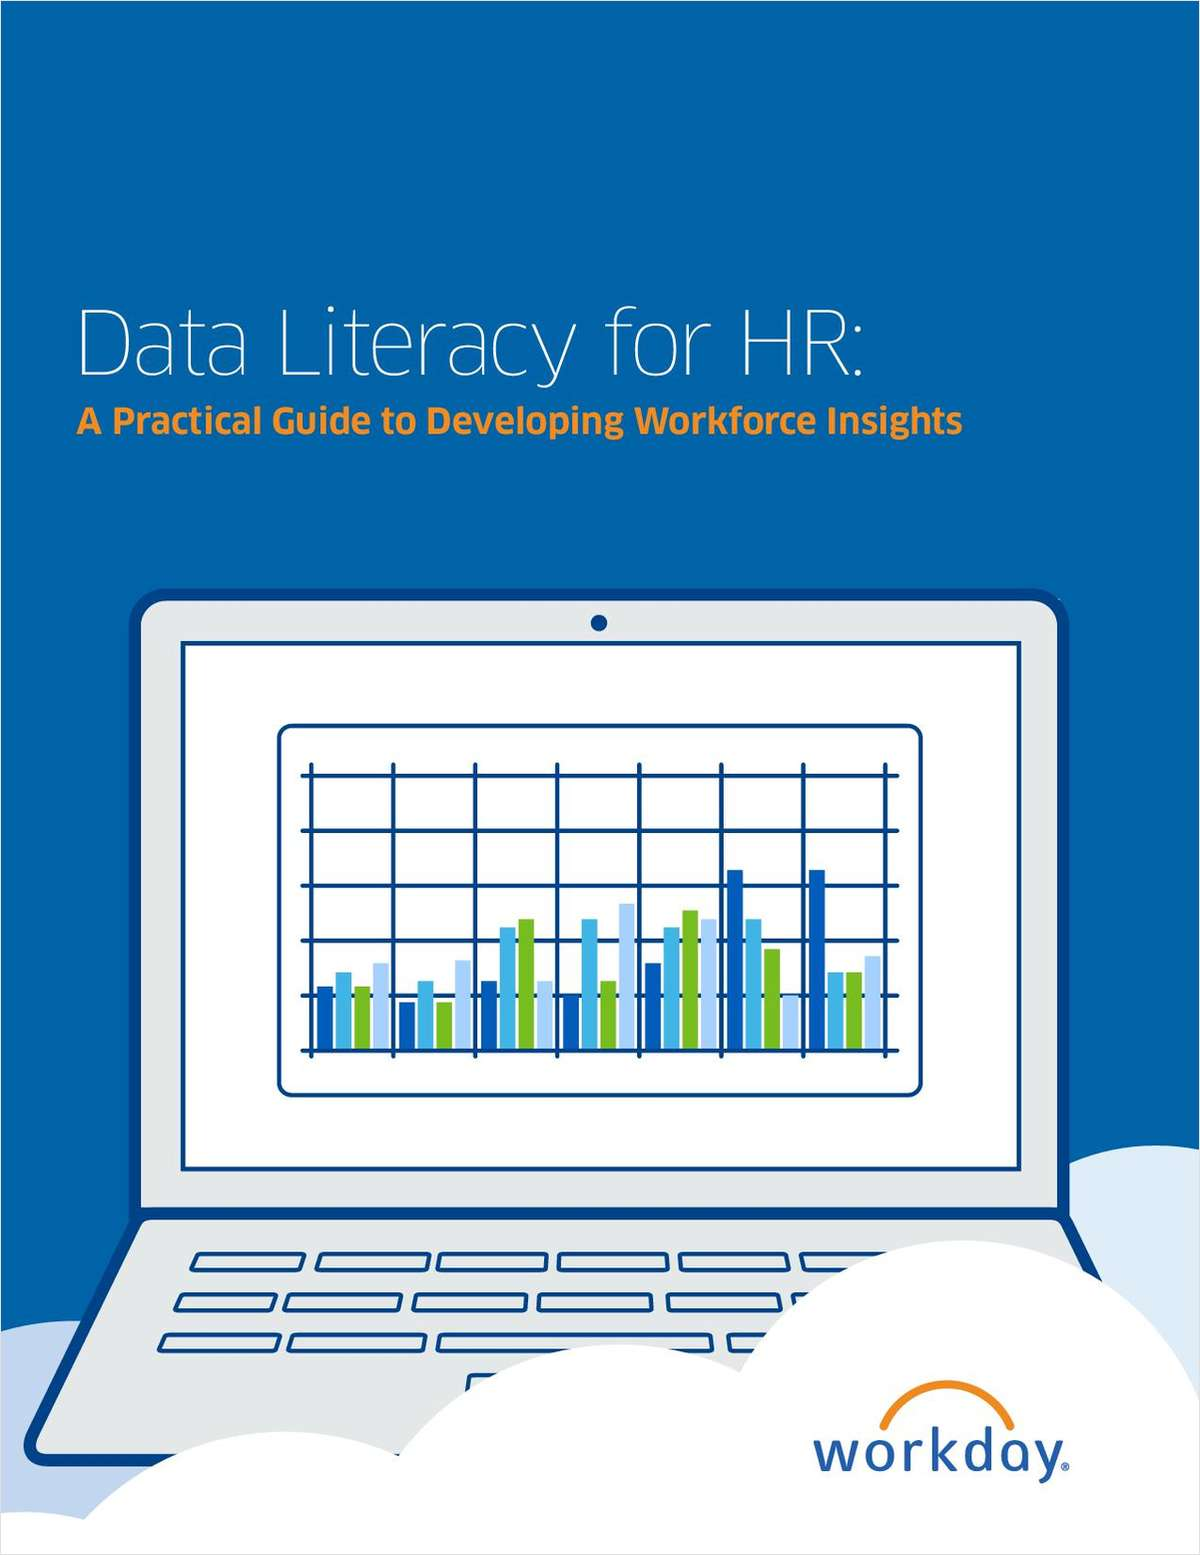 Data Literacy for HR - A Practical Guide to Developing Workforce Insights